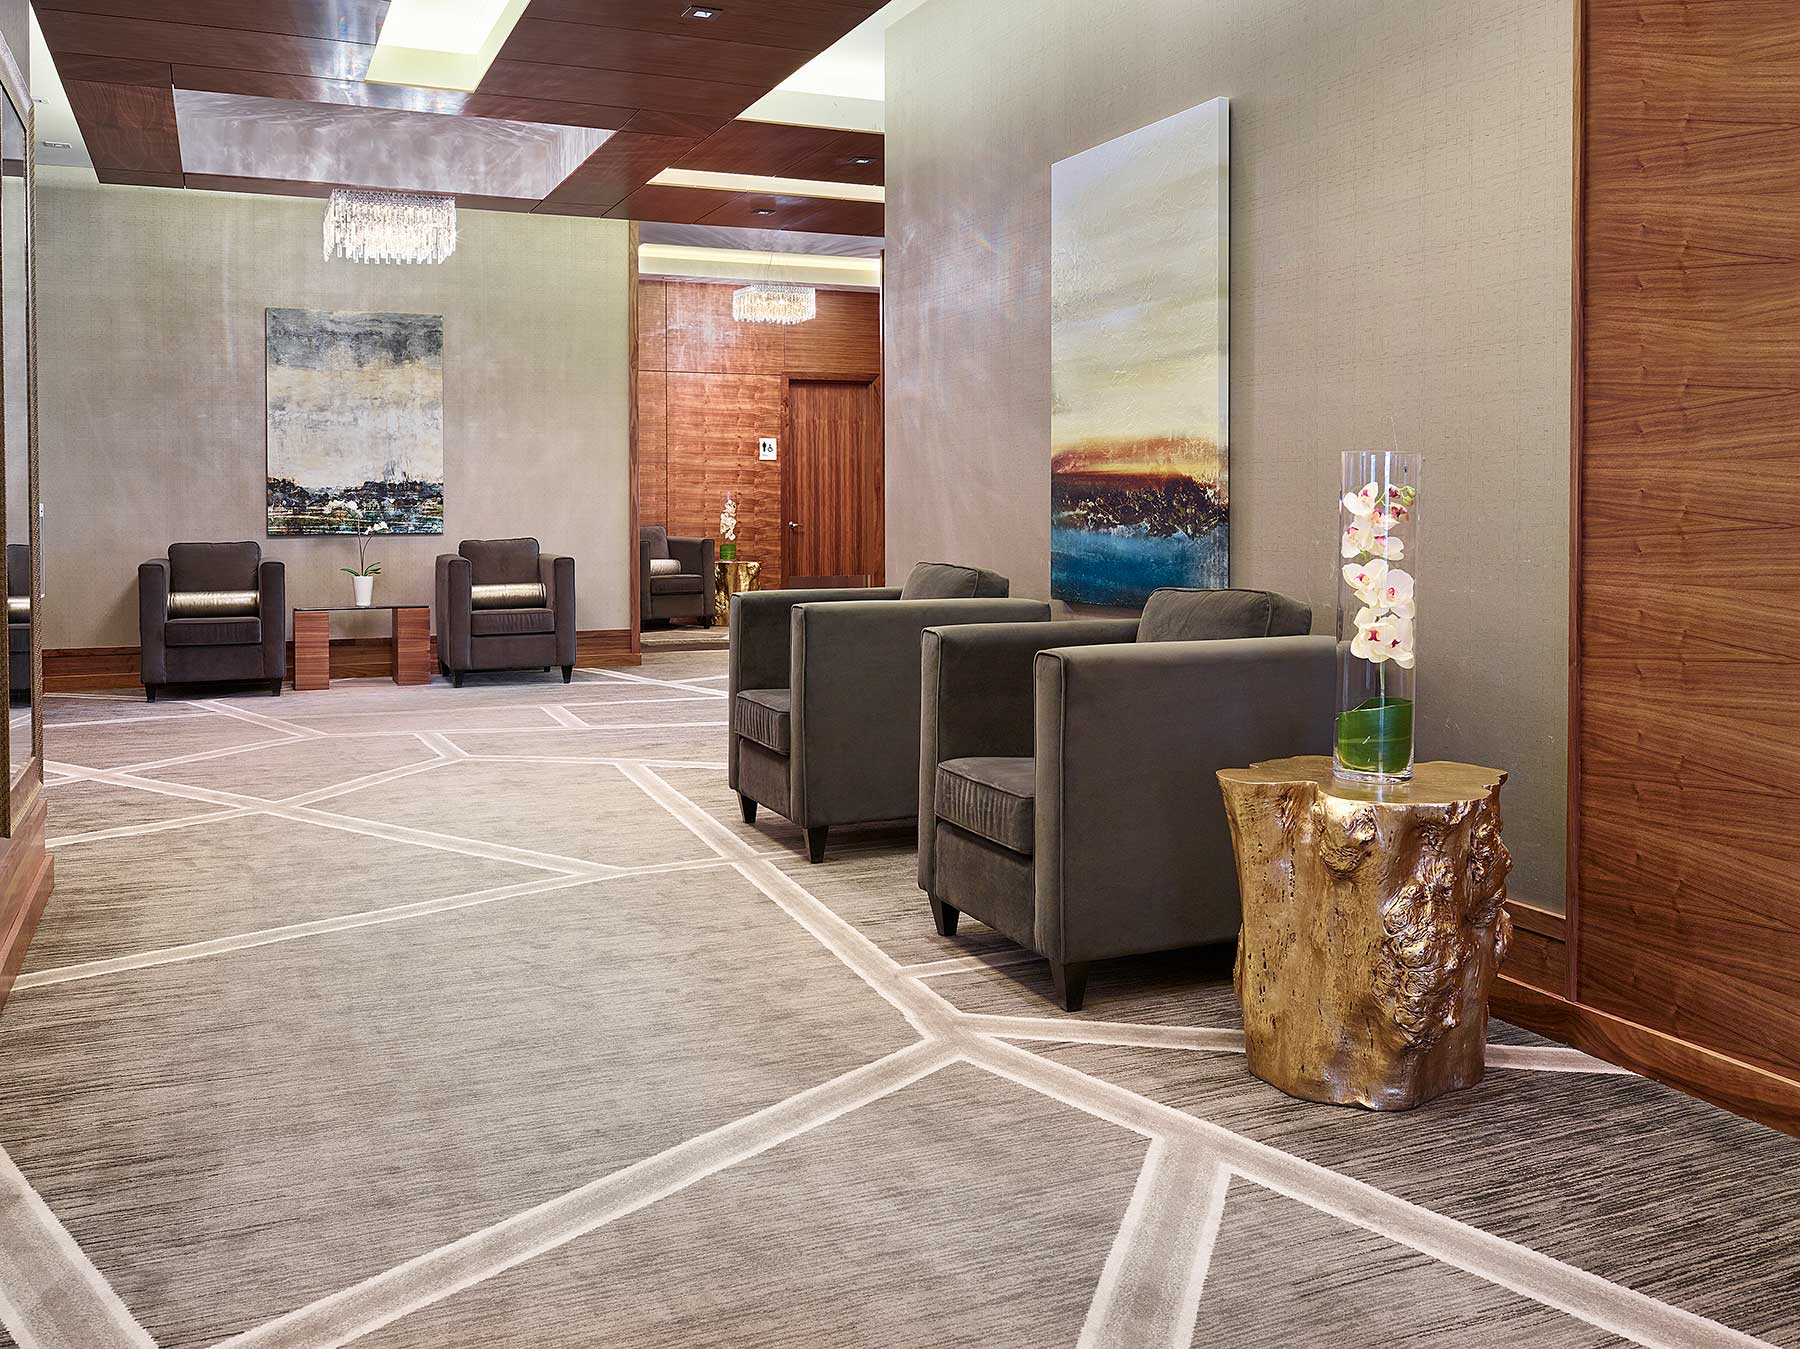 Radisson Hotel Conference Center project 5, hotel interior design Edmonton